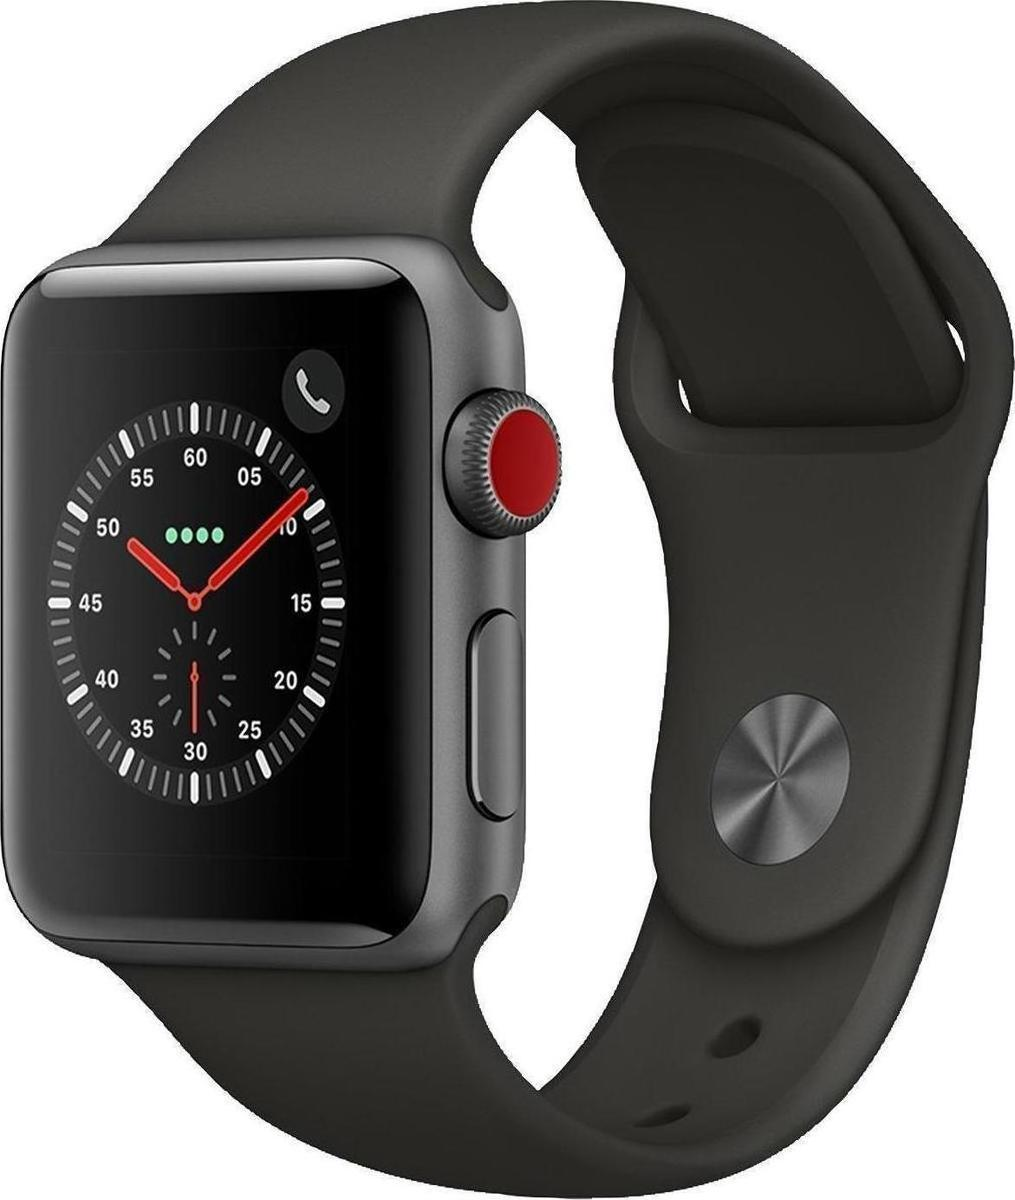 Apple Watch Series 3 Cellular 38mm Grey Aluminium Black Sport Band Πληρωμή έως 24 δόσεις